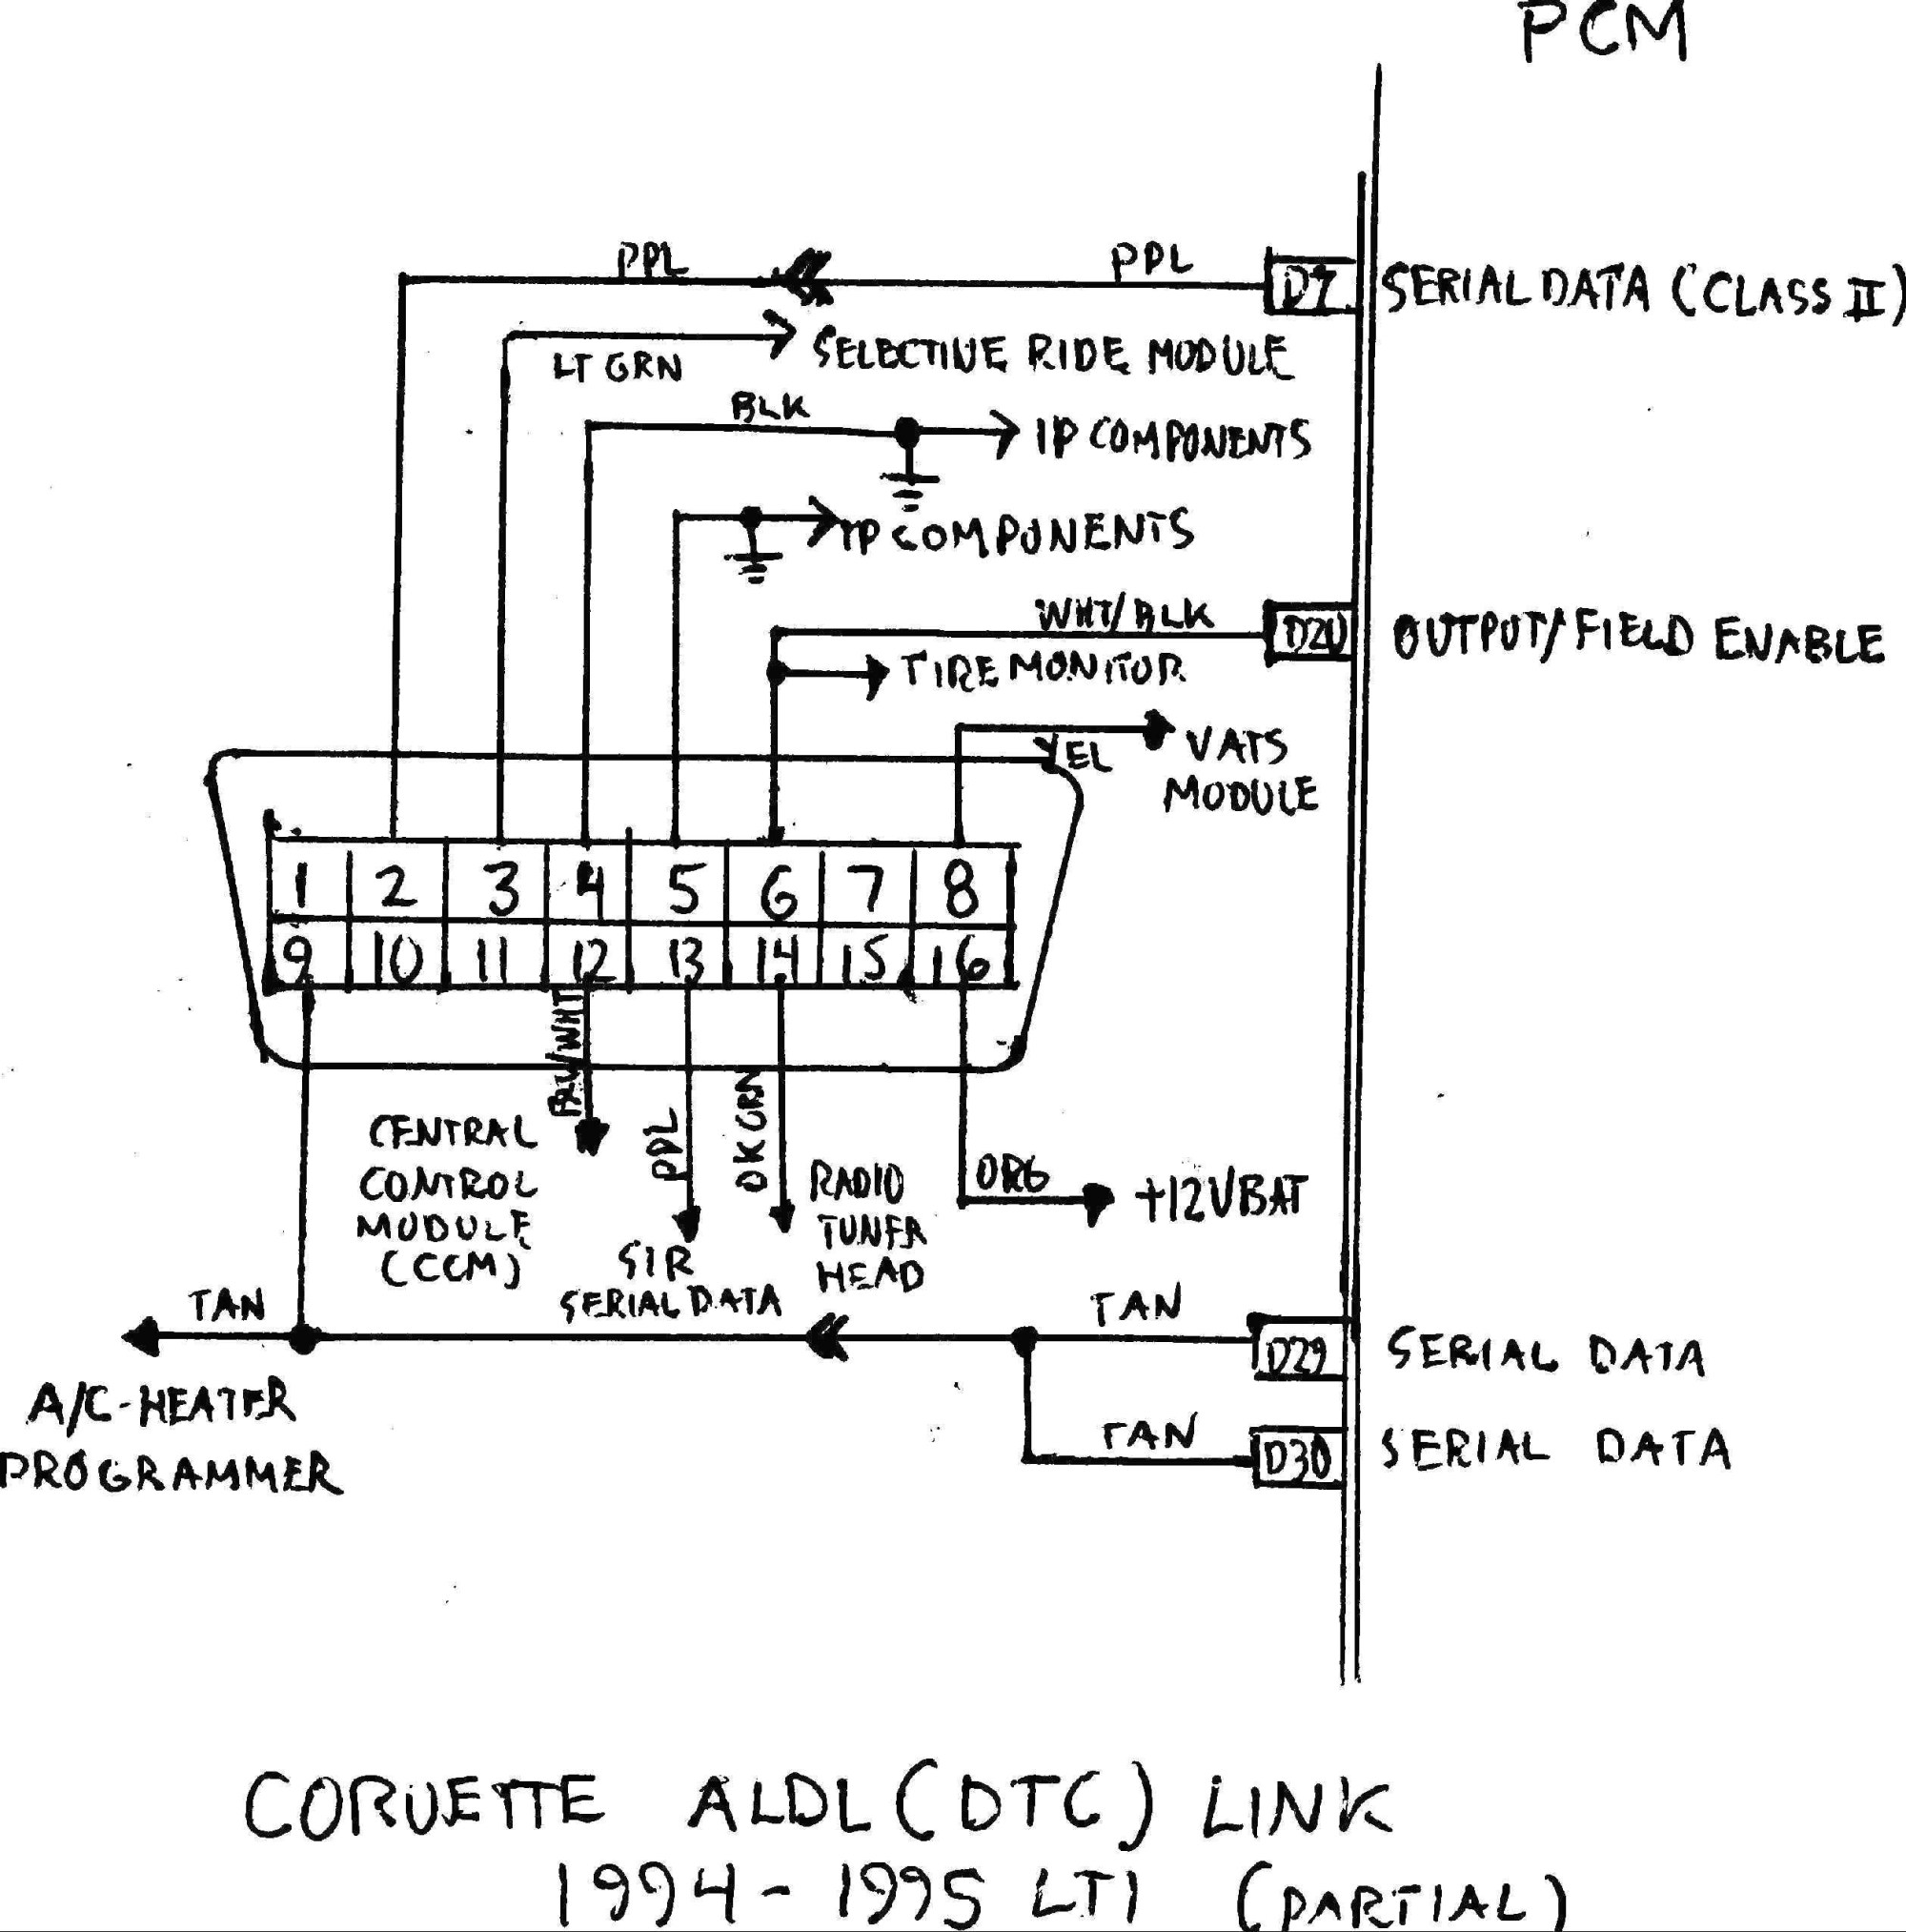 hight resolution of obd ii diagram wiring diagram expert obd2 wire schematic